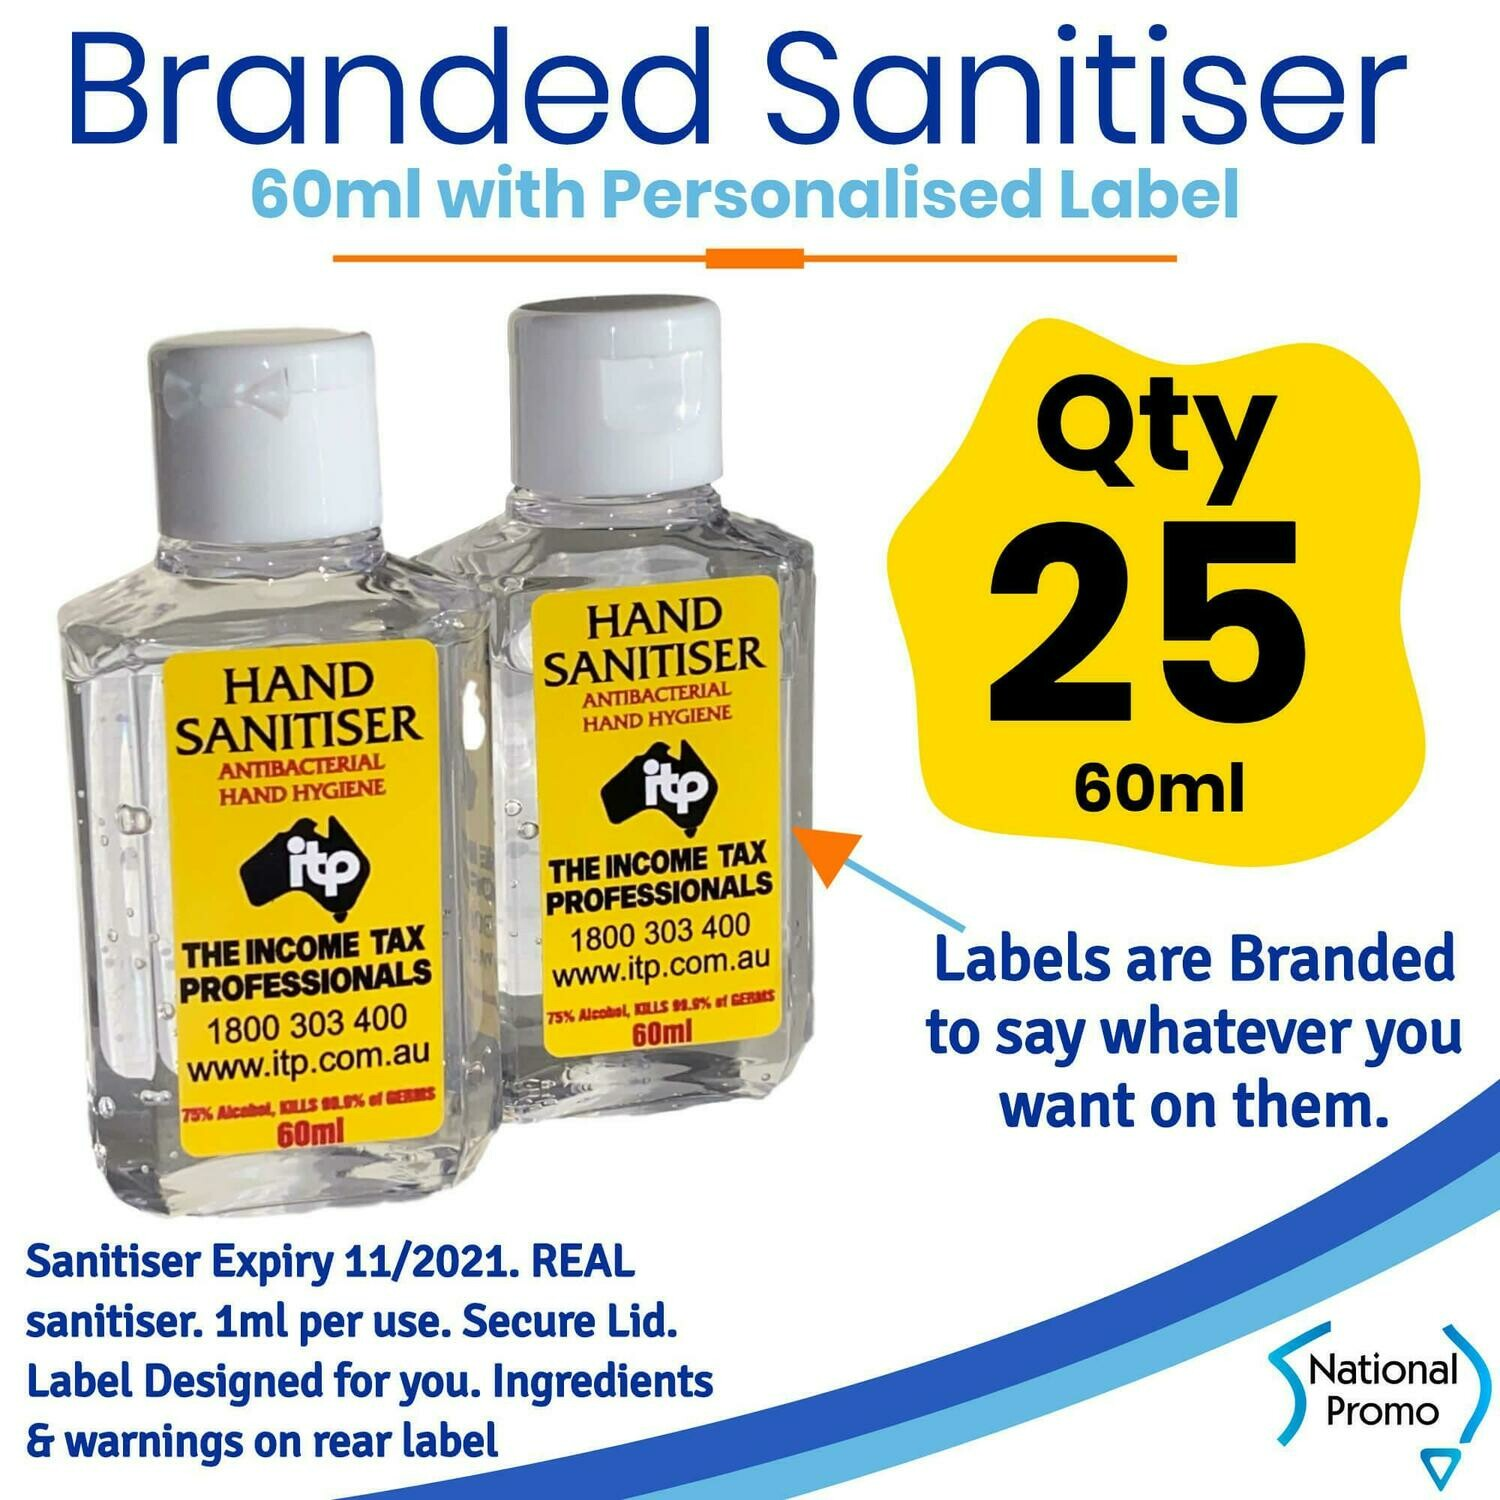 Qty of 25 x 60ml Hand Sanitiser with Personalised Labels